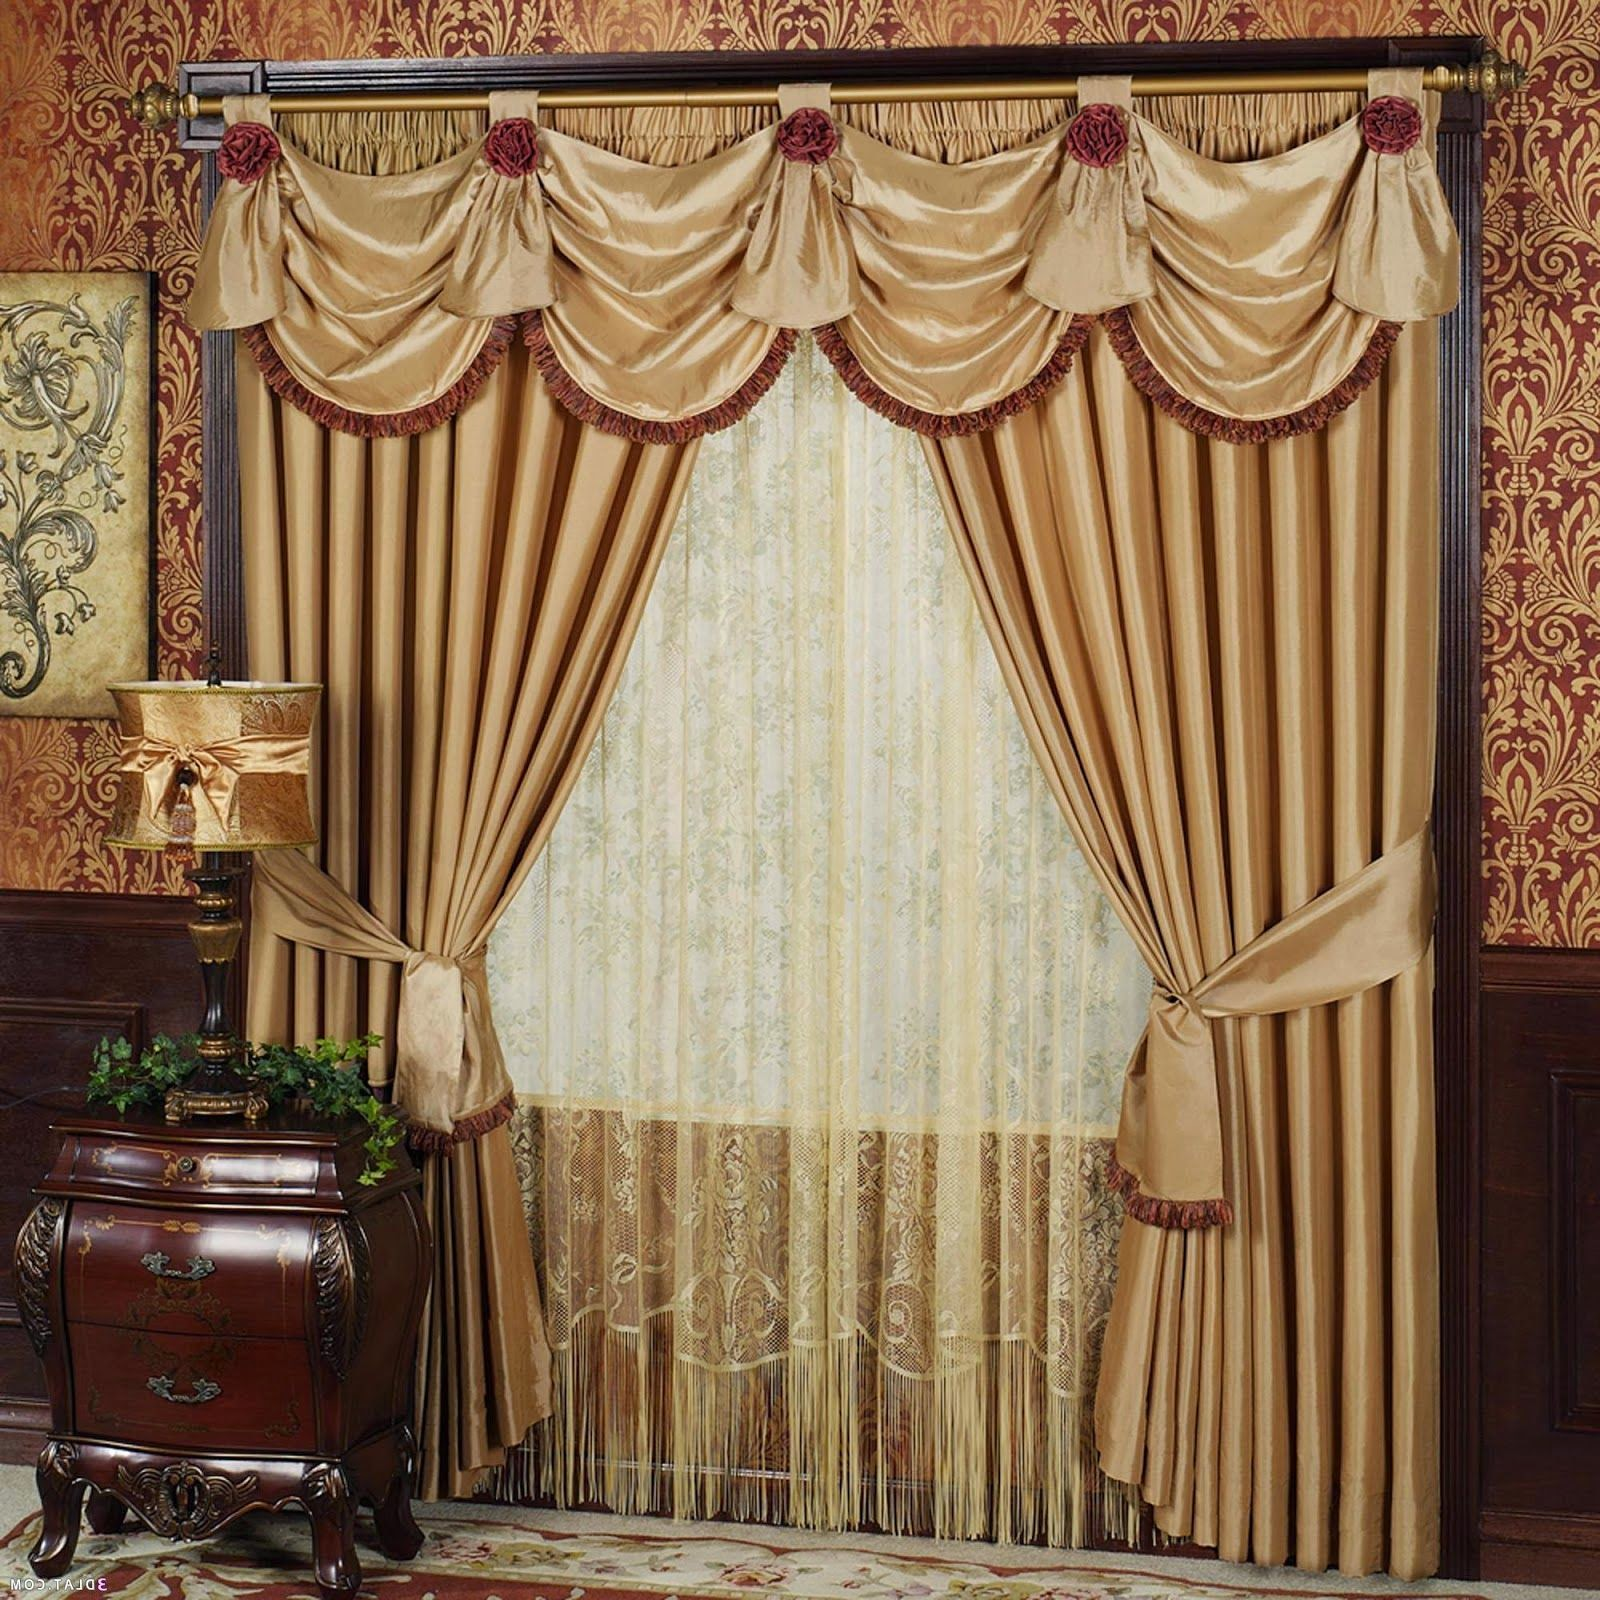 December 2014  Curtains Design. Painted Kitchen Cabinet Ideas. Kitchen Cabinet Parts. Kitchen Cabinets Moncton. Formica Kitchen Cabinets. Pictures Of Distressed Kitchen Cabinets. Creative Kitchen Cabinets. Under Cabinet Lighting Kitchen. Standard Size Of Kitchen Cabinets